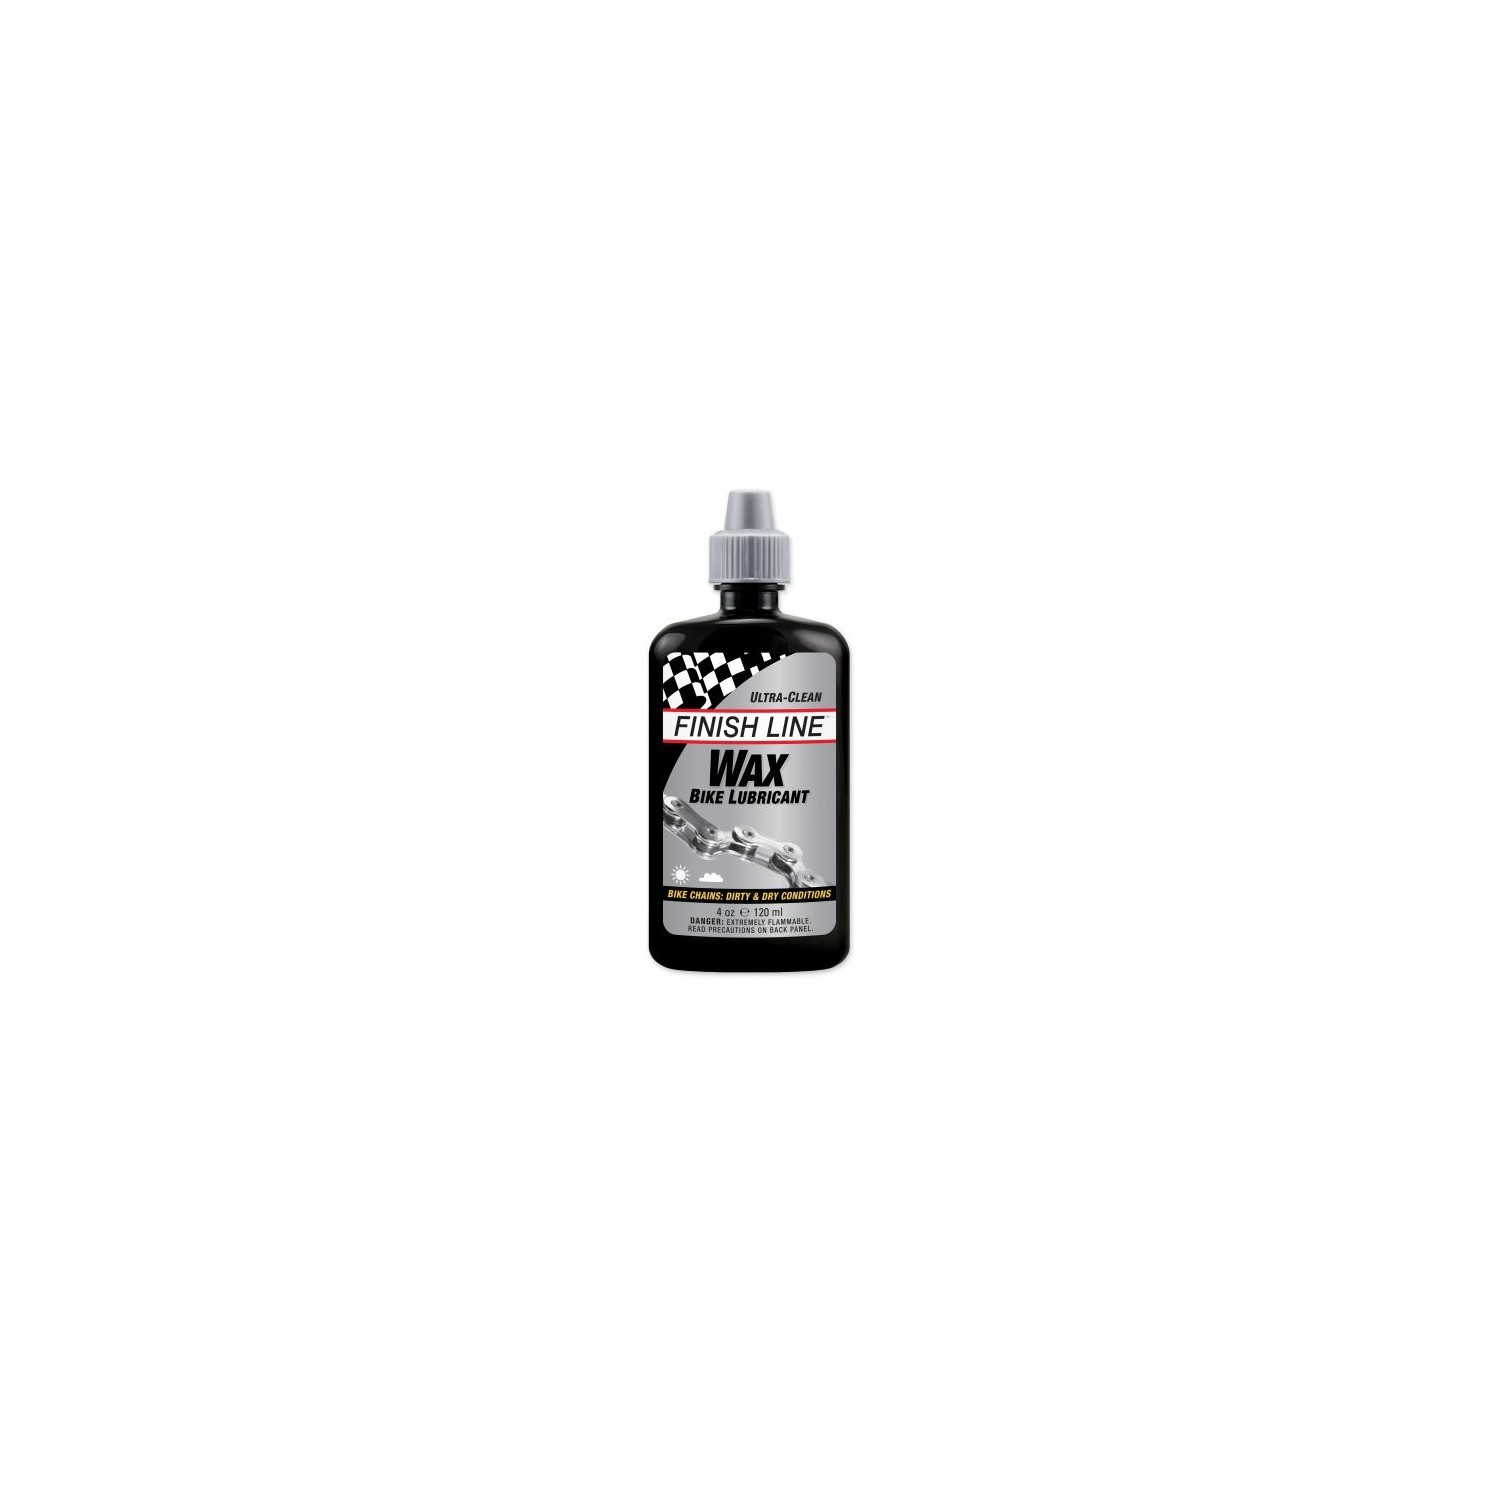 Finish Line Kry Tech olej parafinowy 120ml